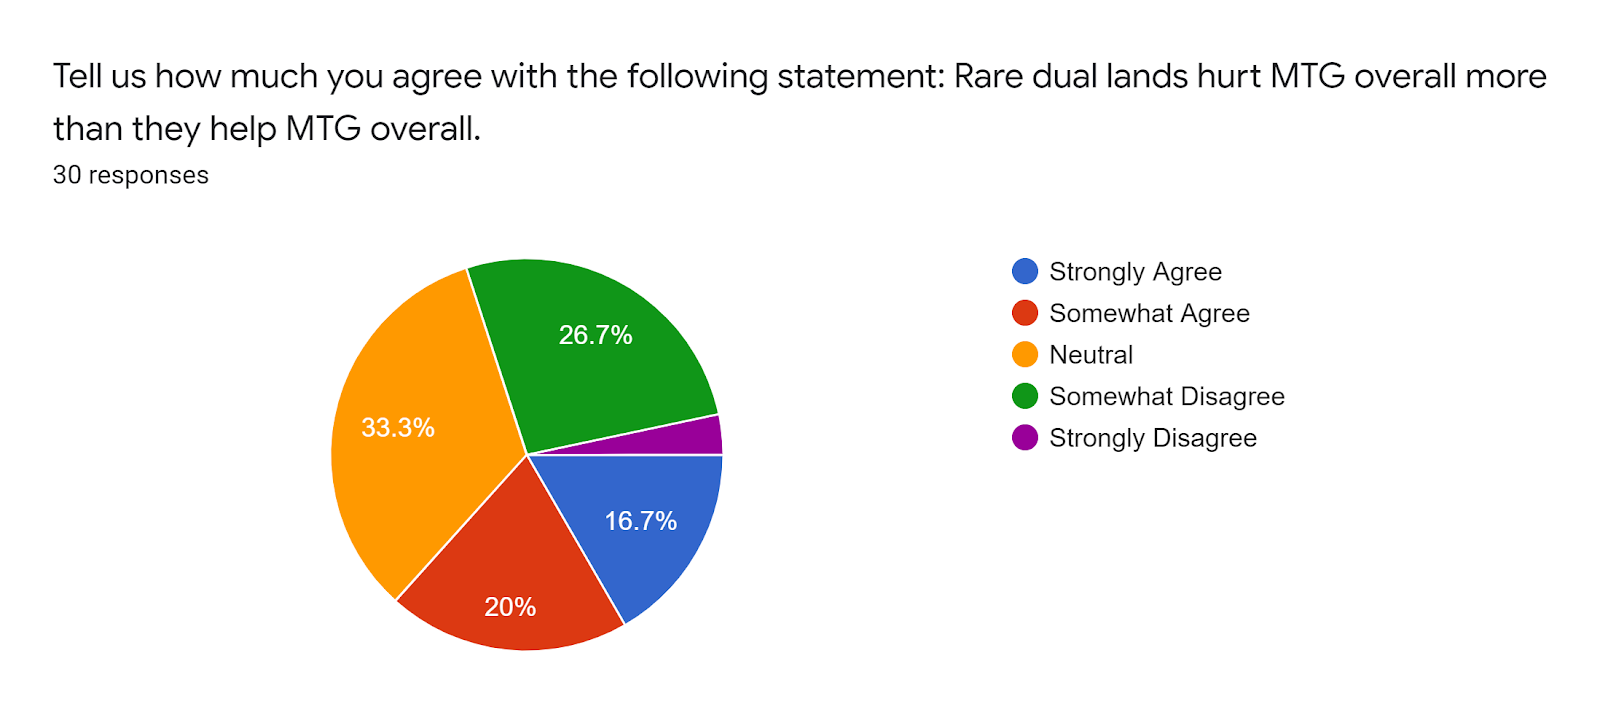 Forms response chart Question title Tell us how much you agree with the following statement Rare dual lands hurt MTG overall more than they help MTG overall Number of responses 30 responses